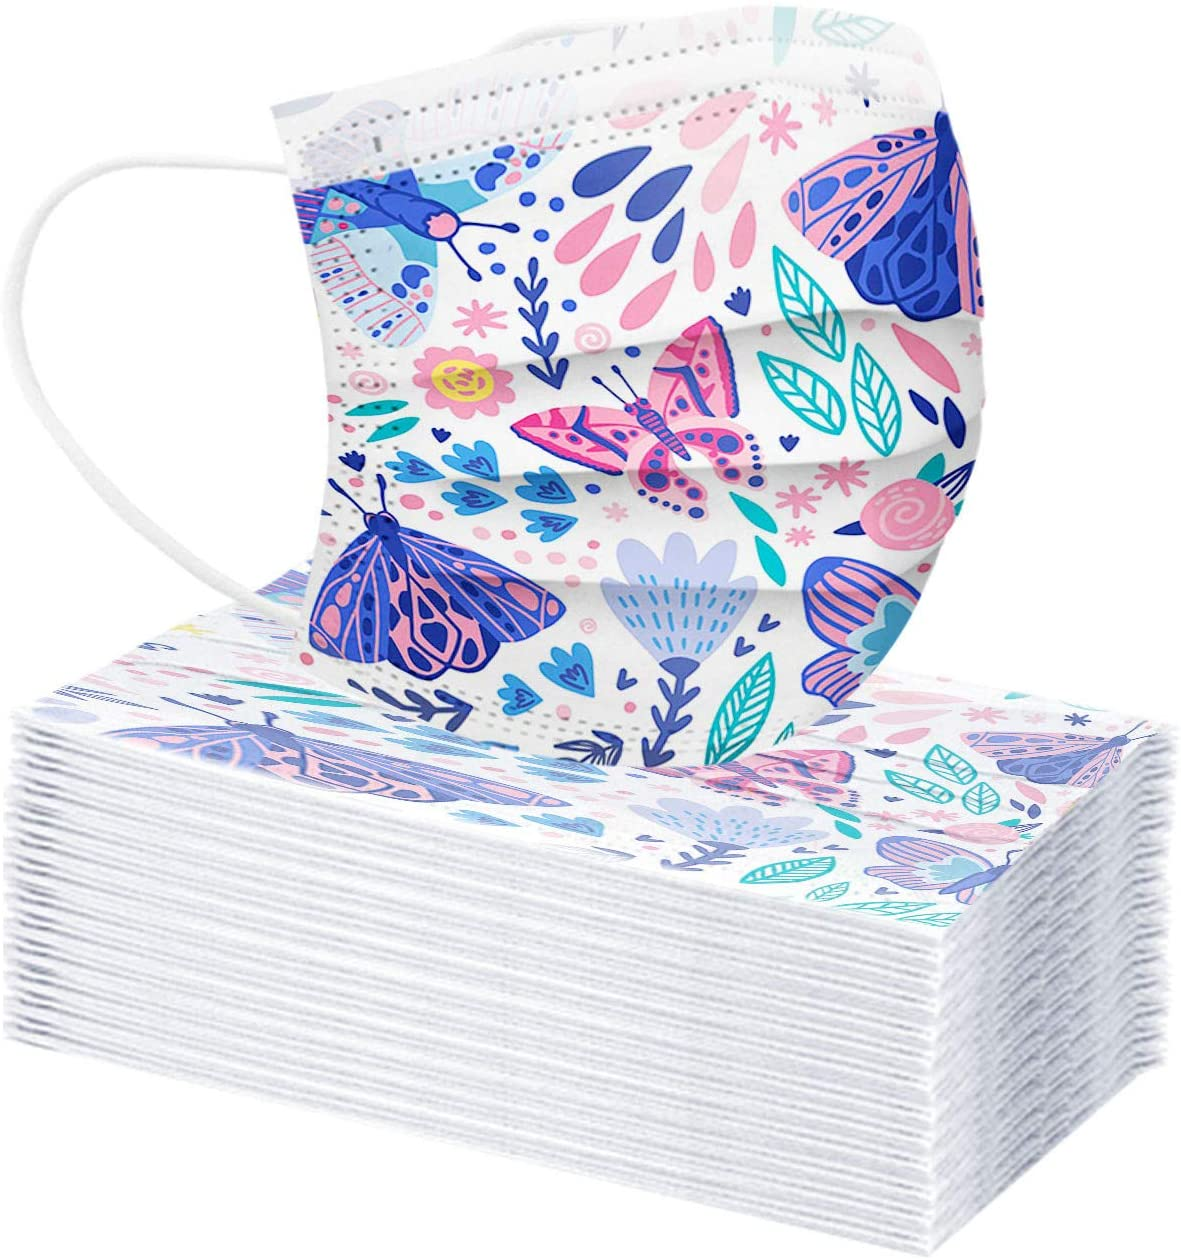 40Pcs No Reusable Butterfly Floral Print Flower 3-Ply Non-Woven Face Cloth Breathable Shield for Women Adults